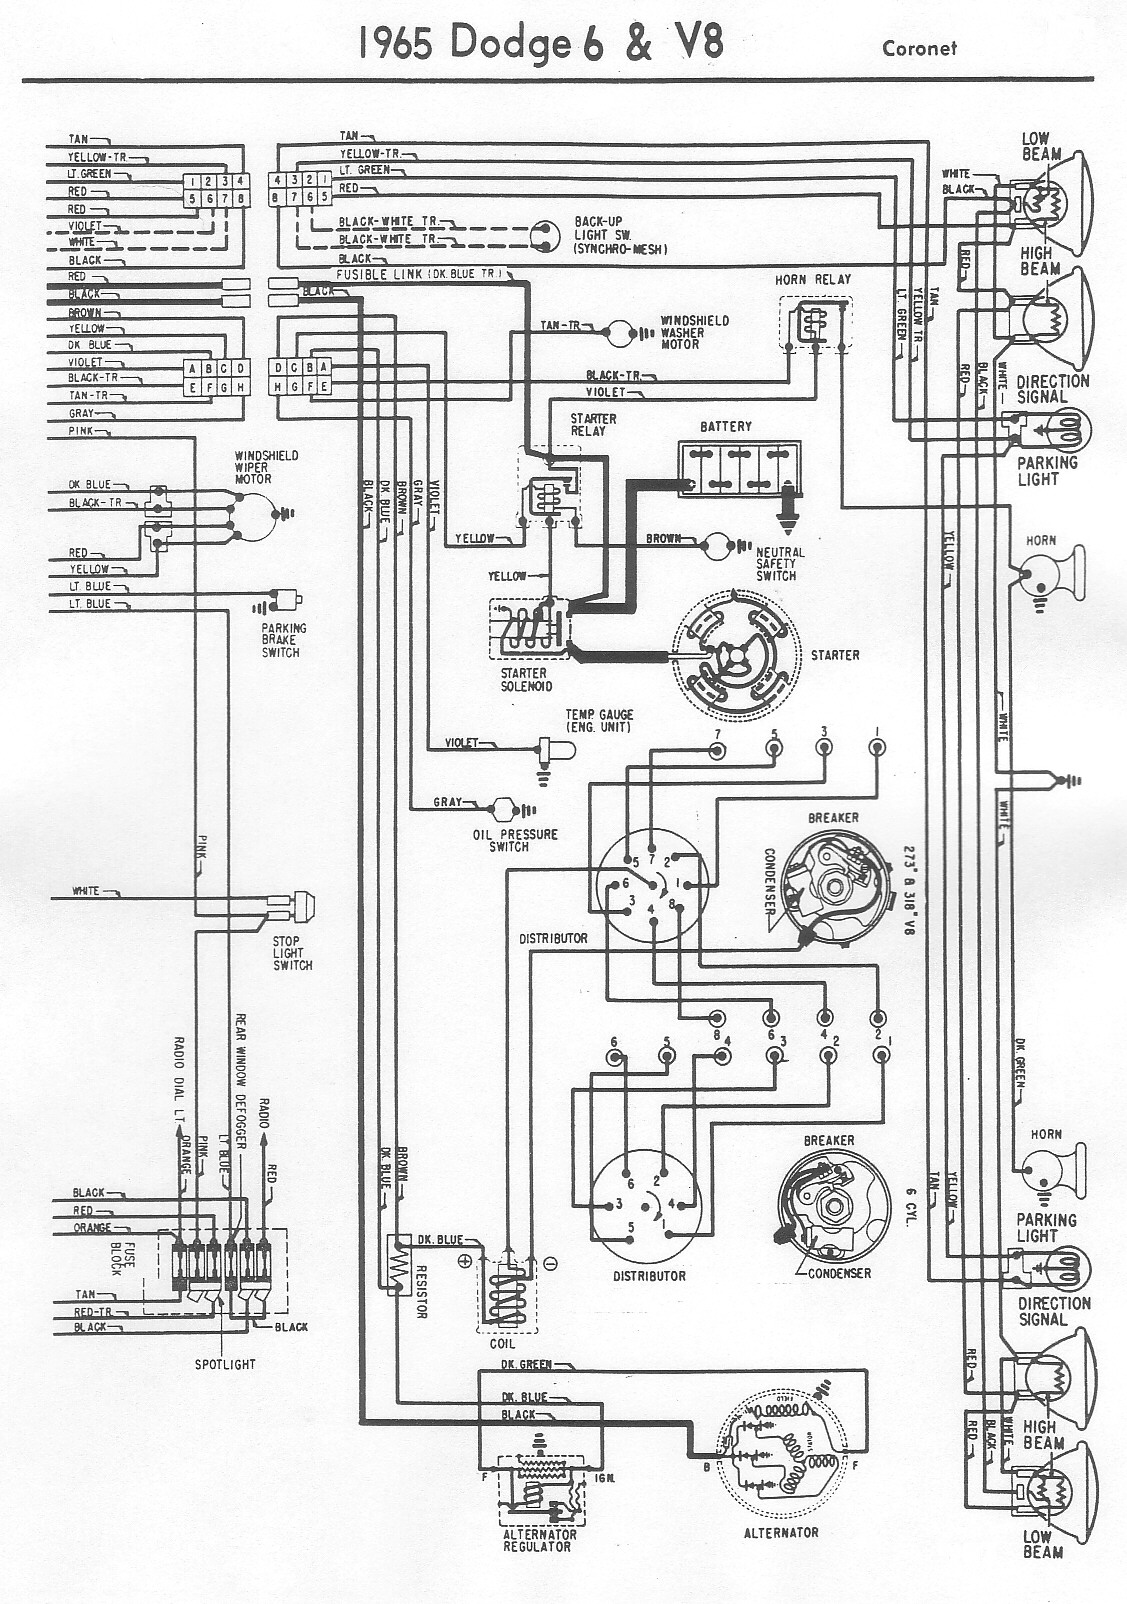 Dodge Dart Fog Light Button Wiring Diagram from i0.wp.com